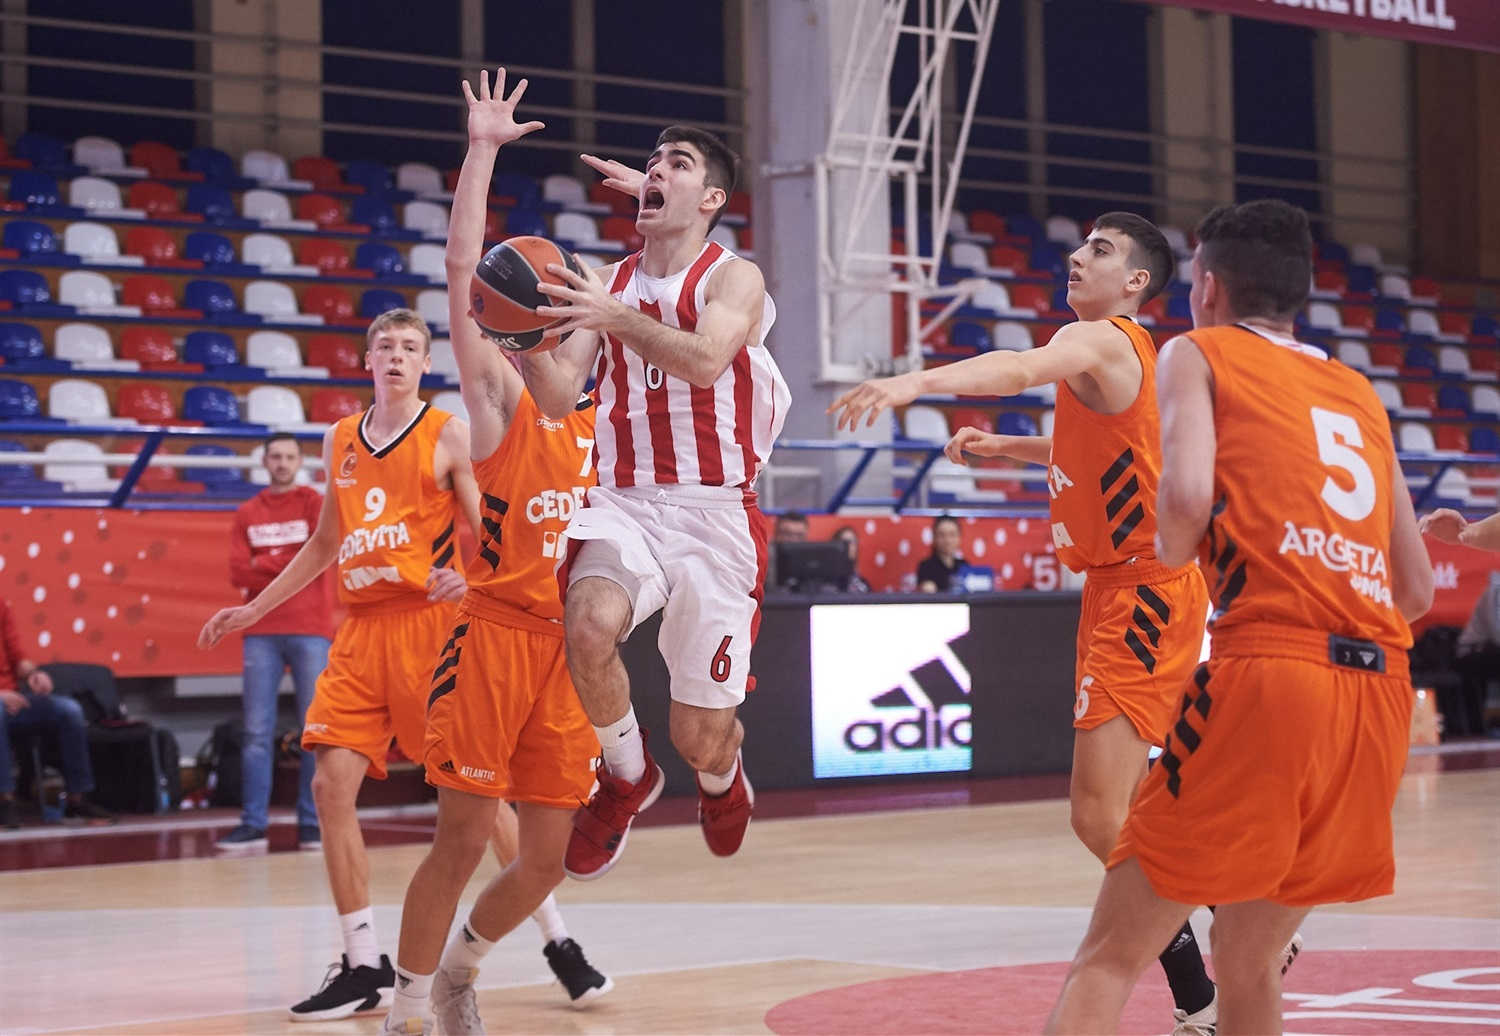 Iosif Koloveros - U18 Olympiacos Piraeus - ANGT Belgrade 2019 (photo Dragoslav Zarkovic) - JT18